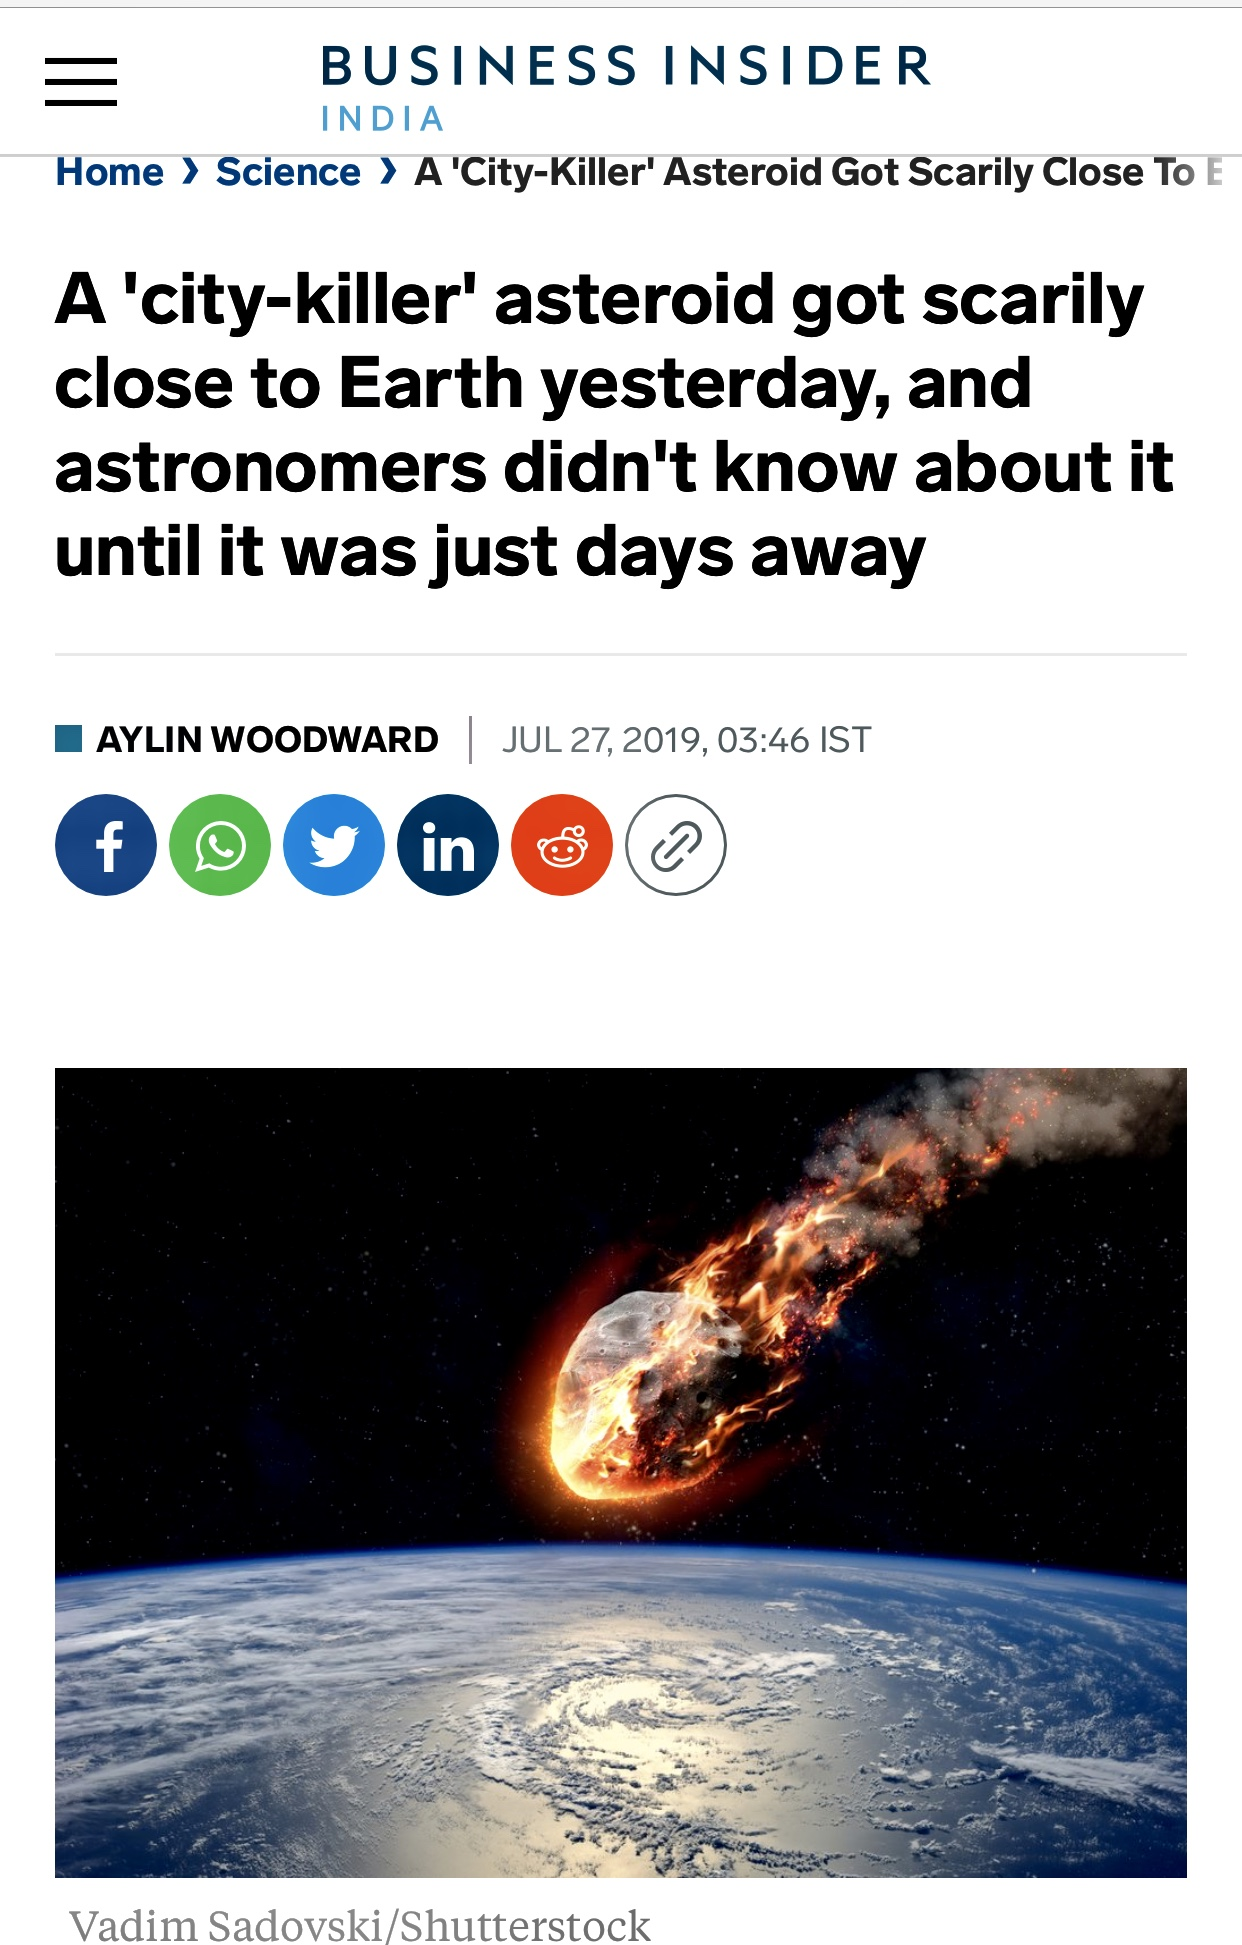 A 'city-killer' asteroid got scarily close to Earth yesterday, and astronomers didn't know about it until it was just days away   Business Insider India